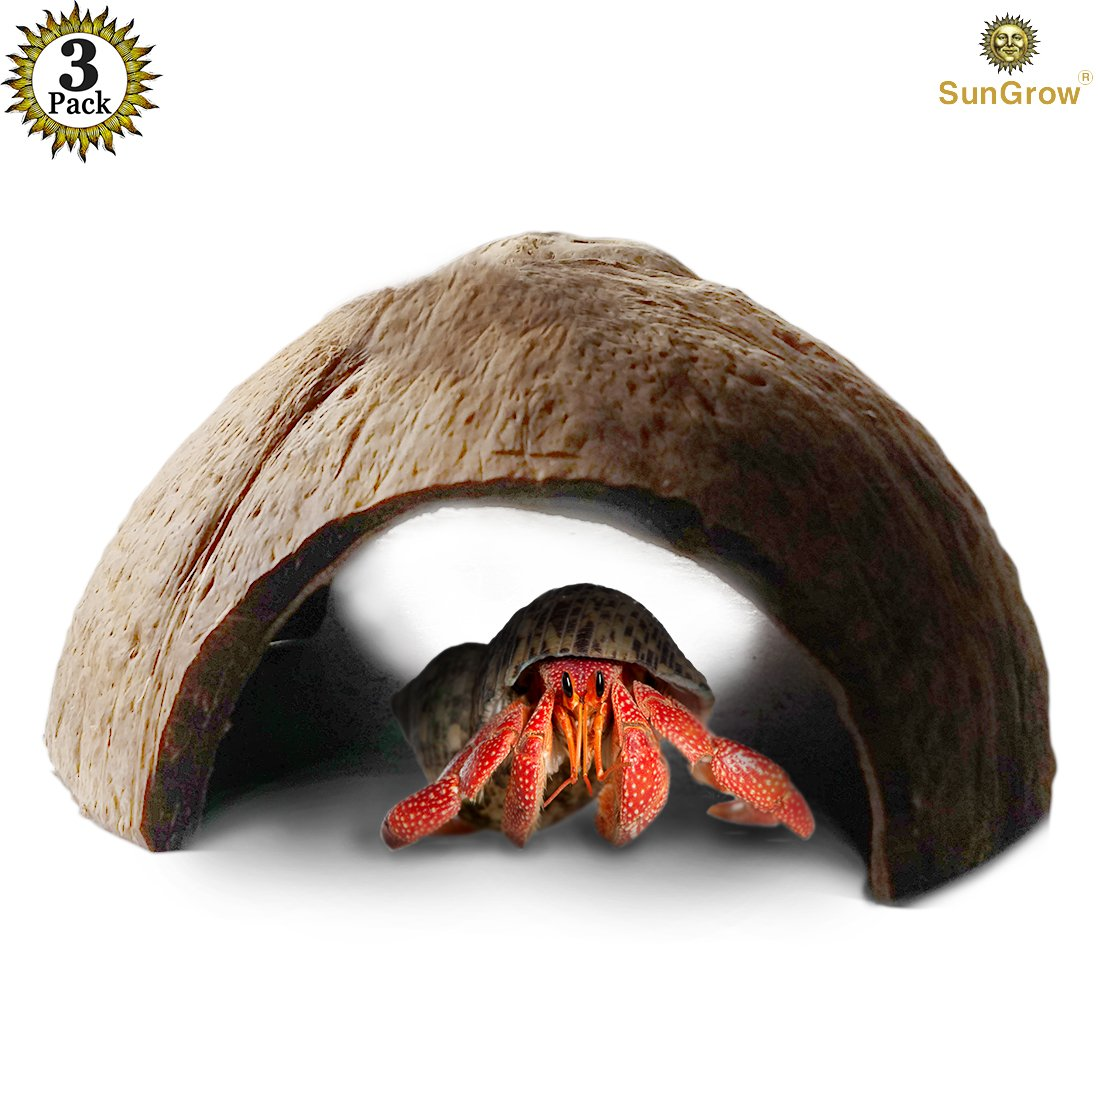 Eco-Friendly Hermit Crab hut - Pet-Safe arthropod's Hideout - Natural, Spacious Coco Tunnel - Maximum Privacy, Ideal breeding Ground - Encourages Physical Activity - Use as Hermit cave or Climber Marimo Pet Store Test_vendor_hut